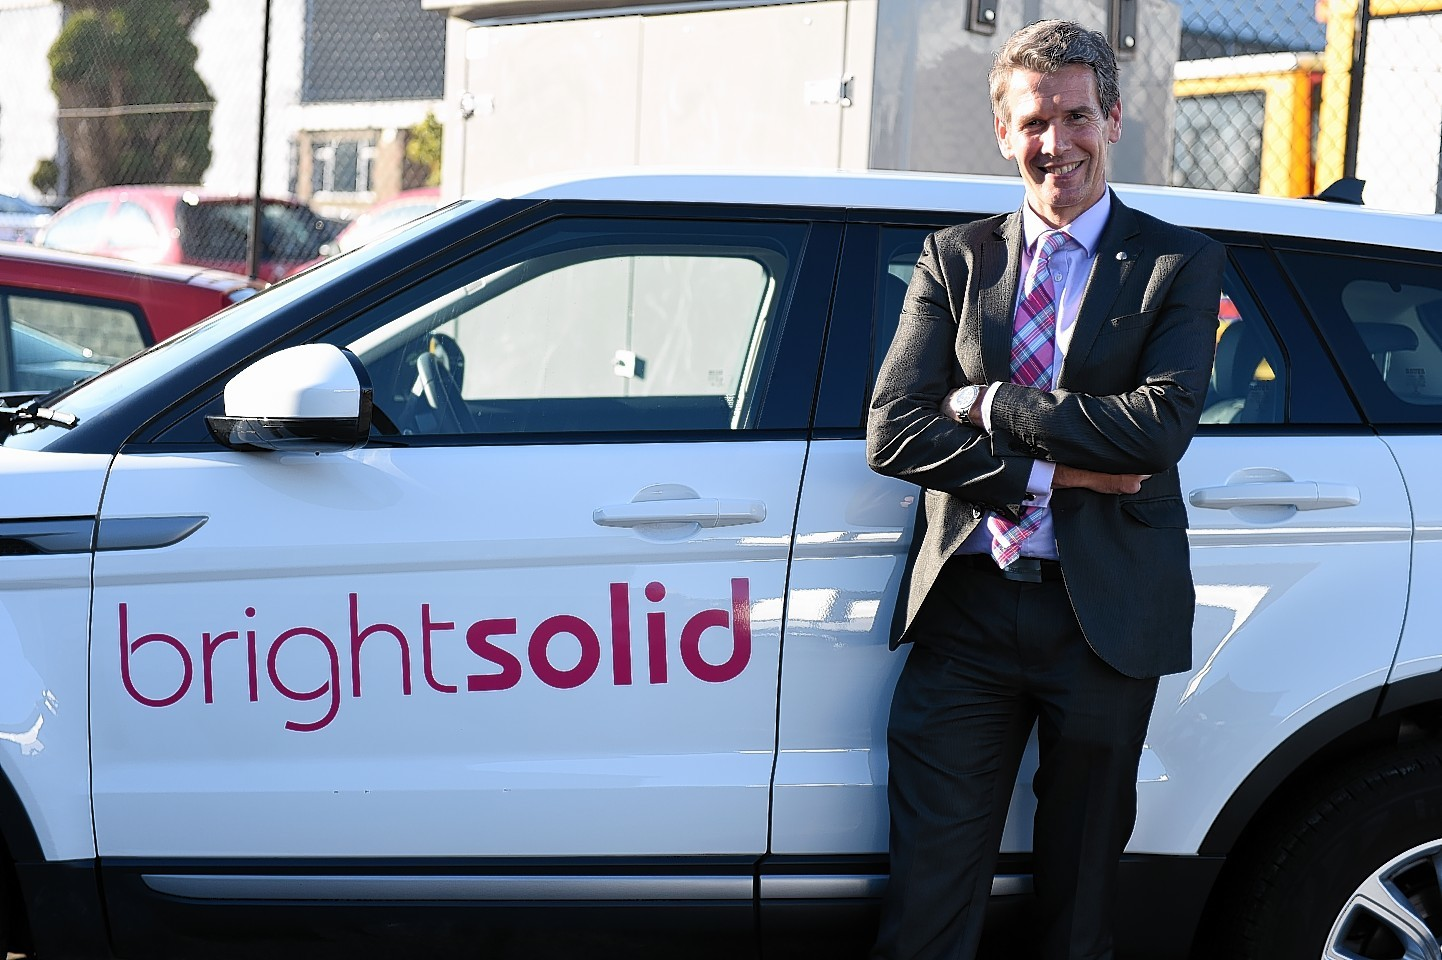 Brightsolid chief executive Richard Higgs